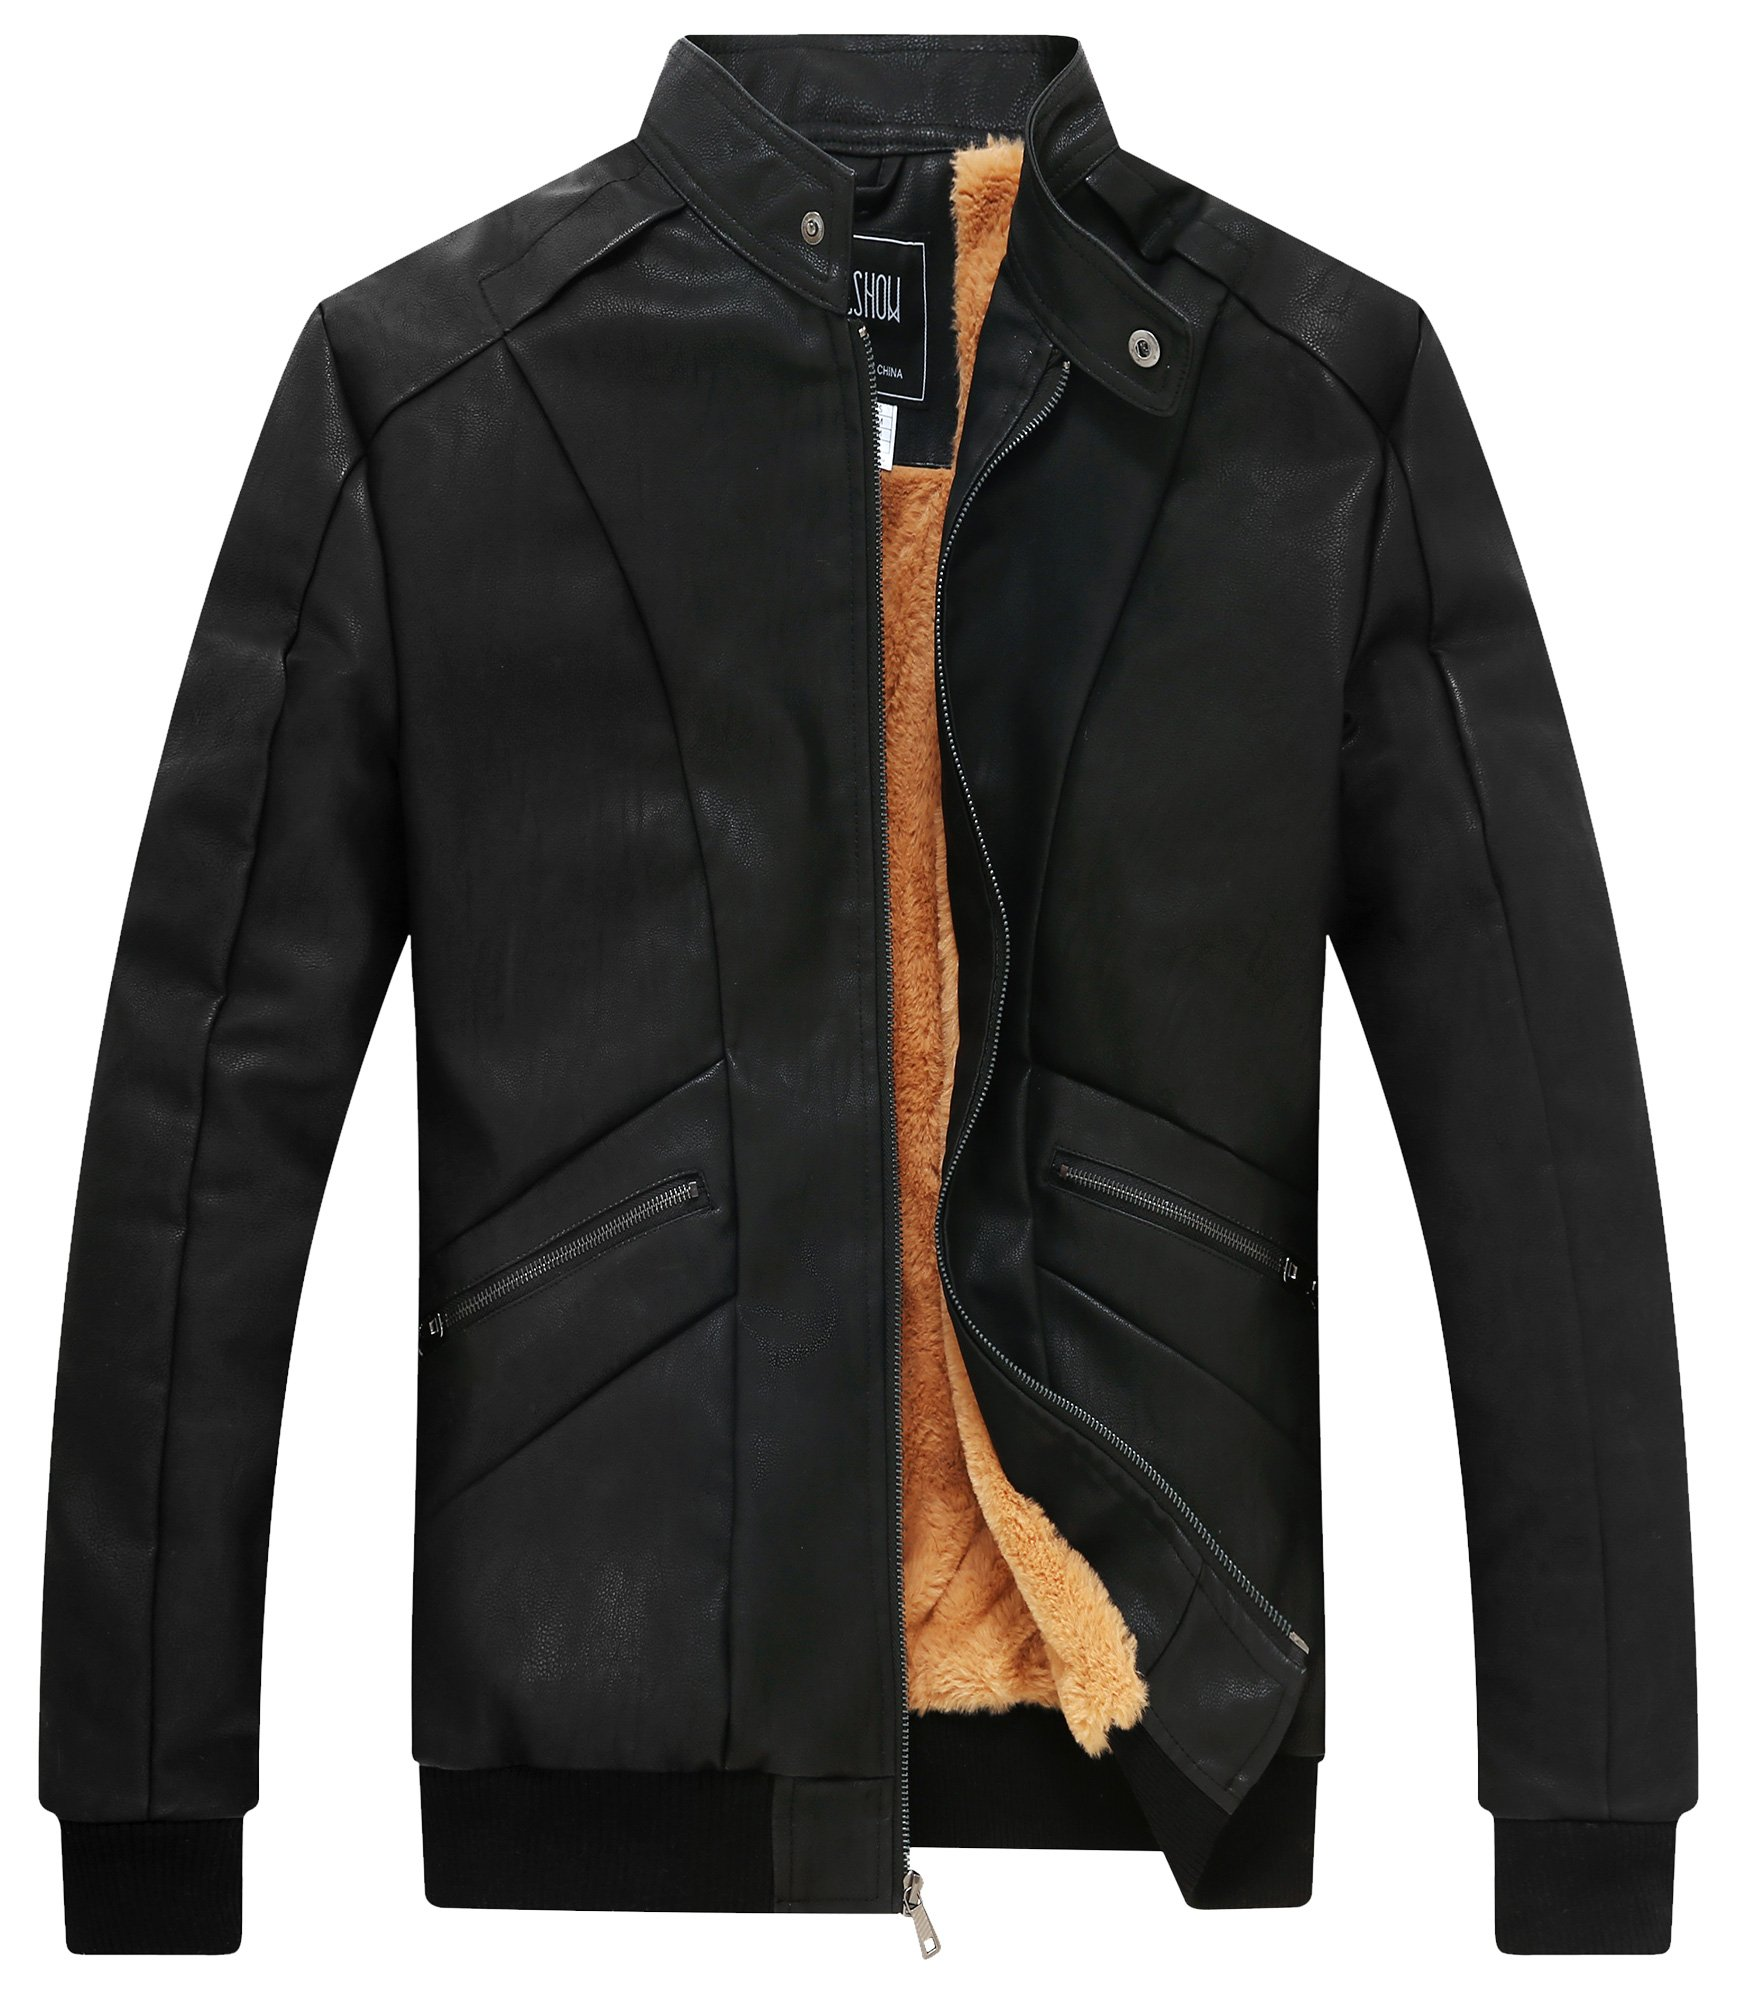 ZSHOW Men's Add Wool Leather Jacket Leather Biker Jackets Waterproof Winter Jacket(Black Wool,X-Small)